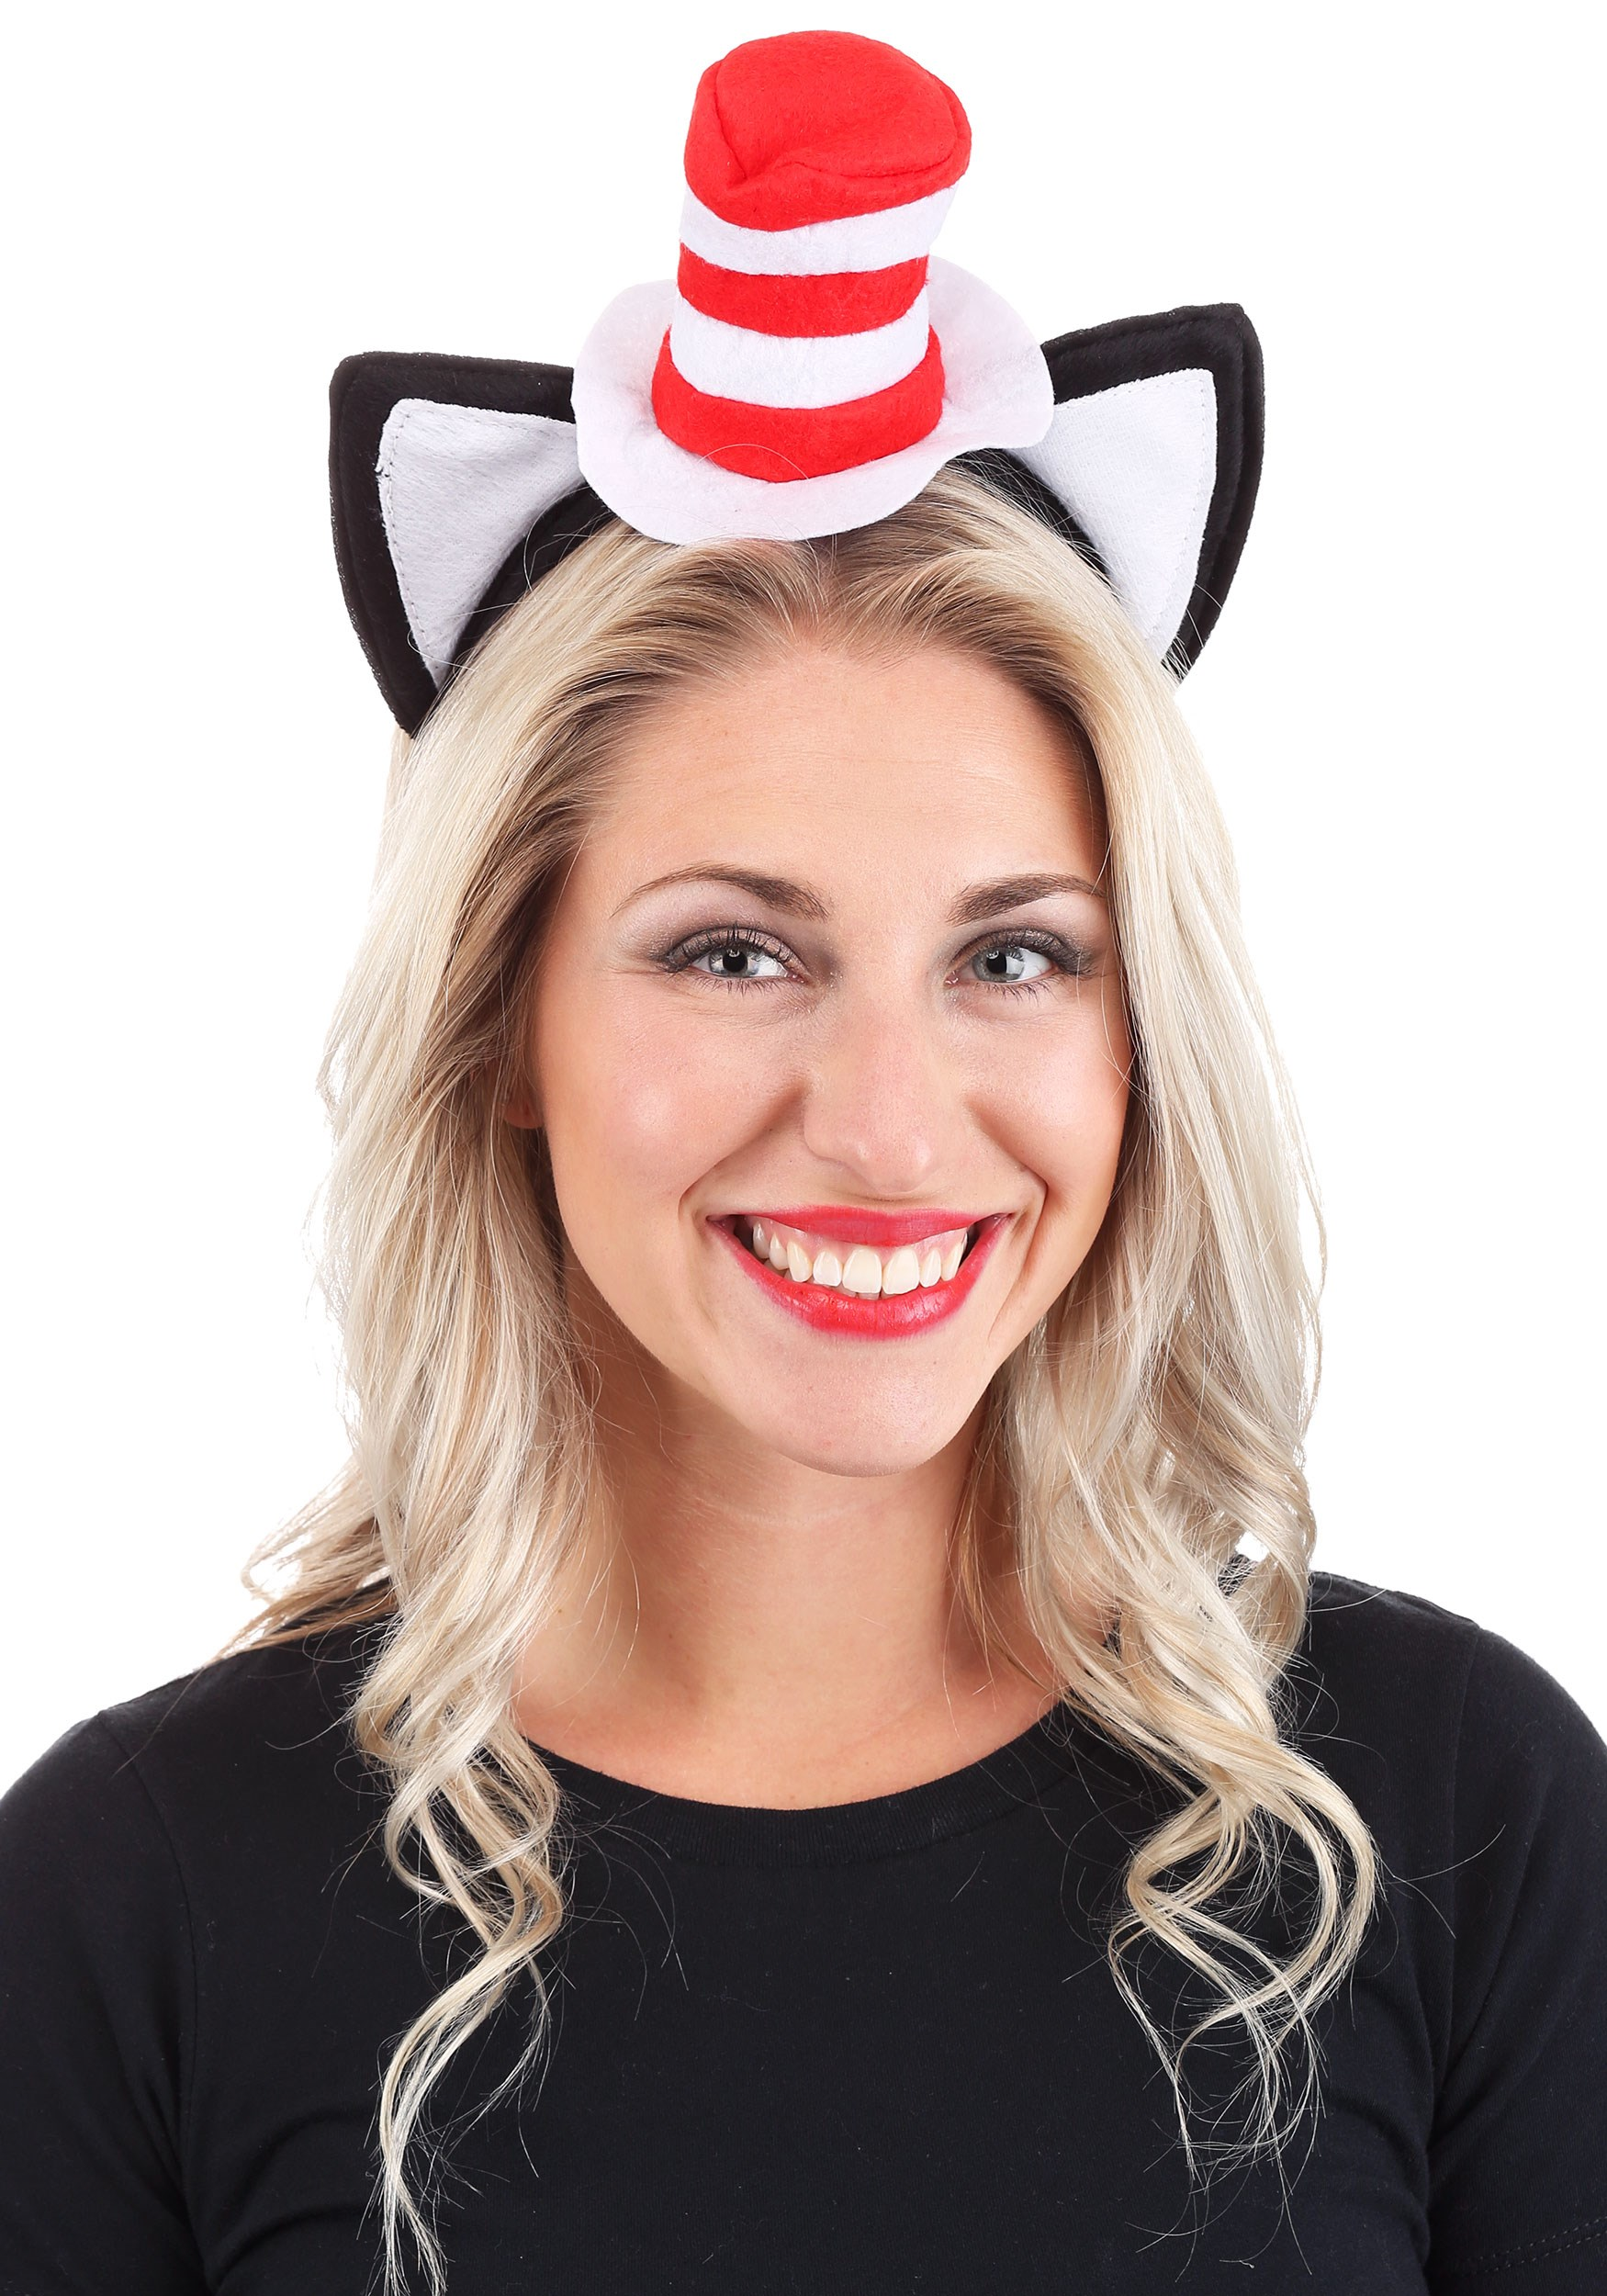 The Cat in the Hat Economy Headband